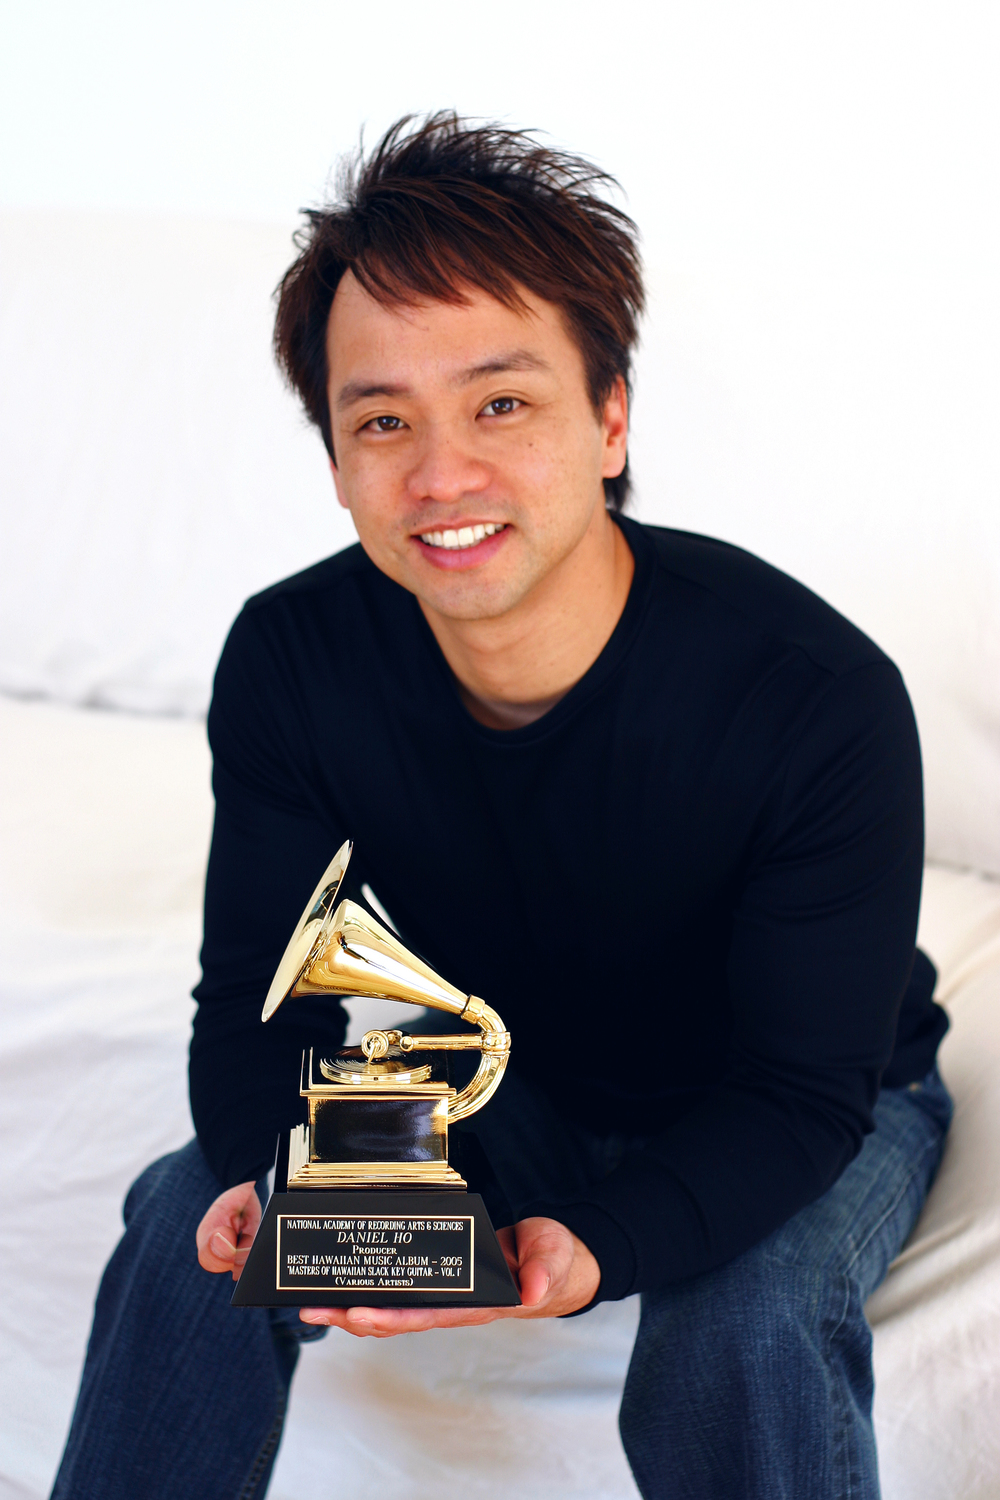 Daniel with Grammy Award